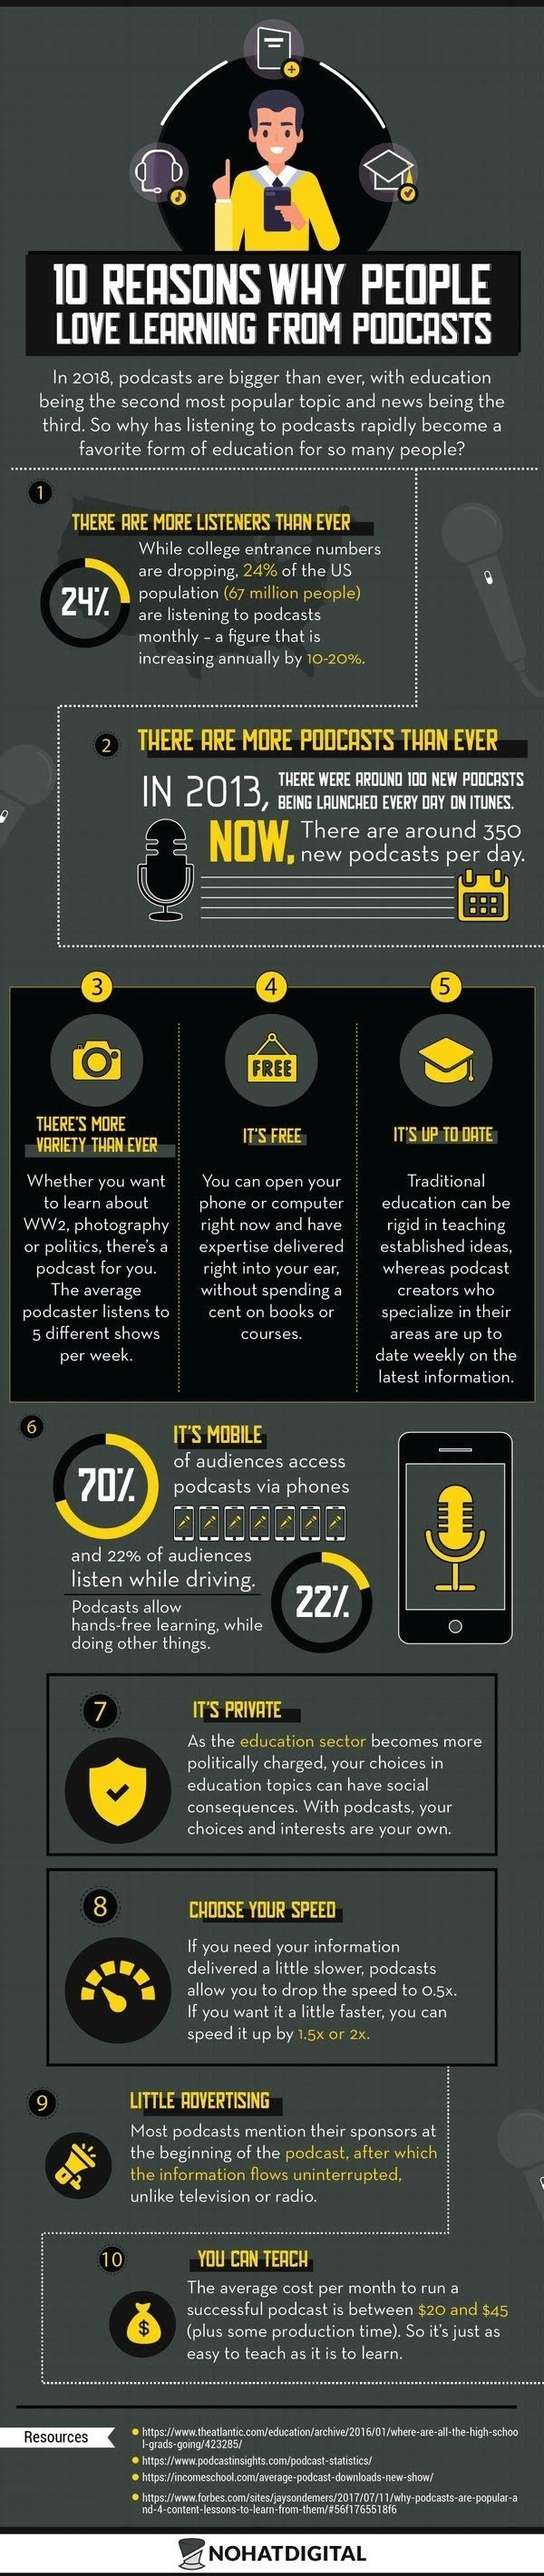 Why is Podcast every day popular? #infographic